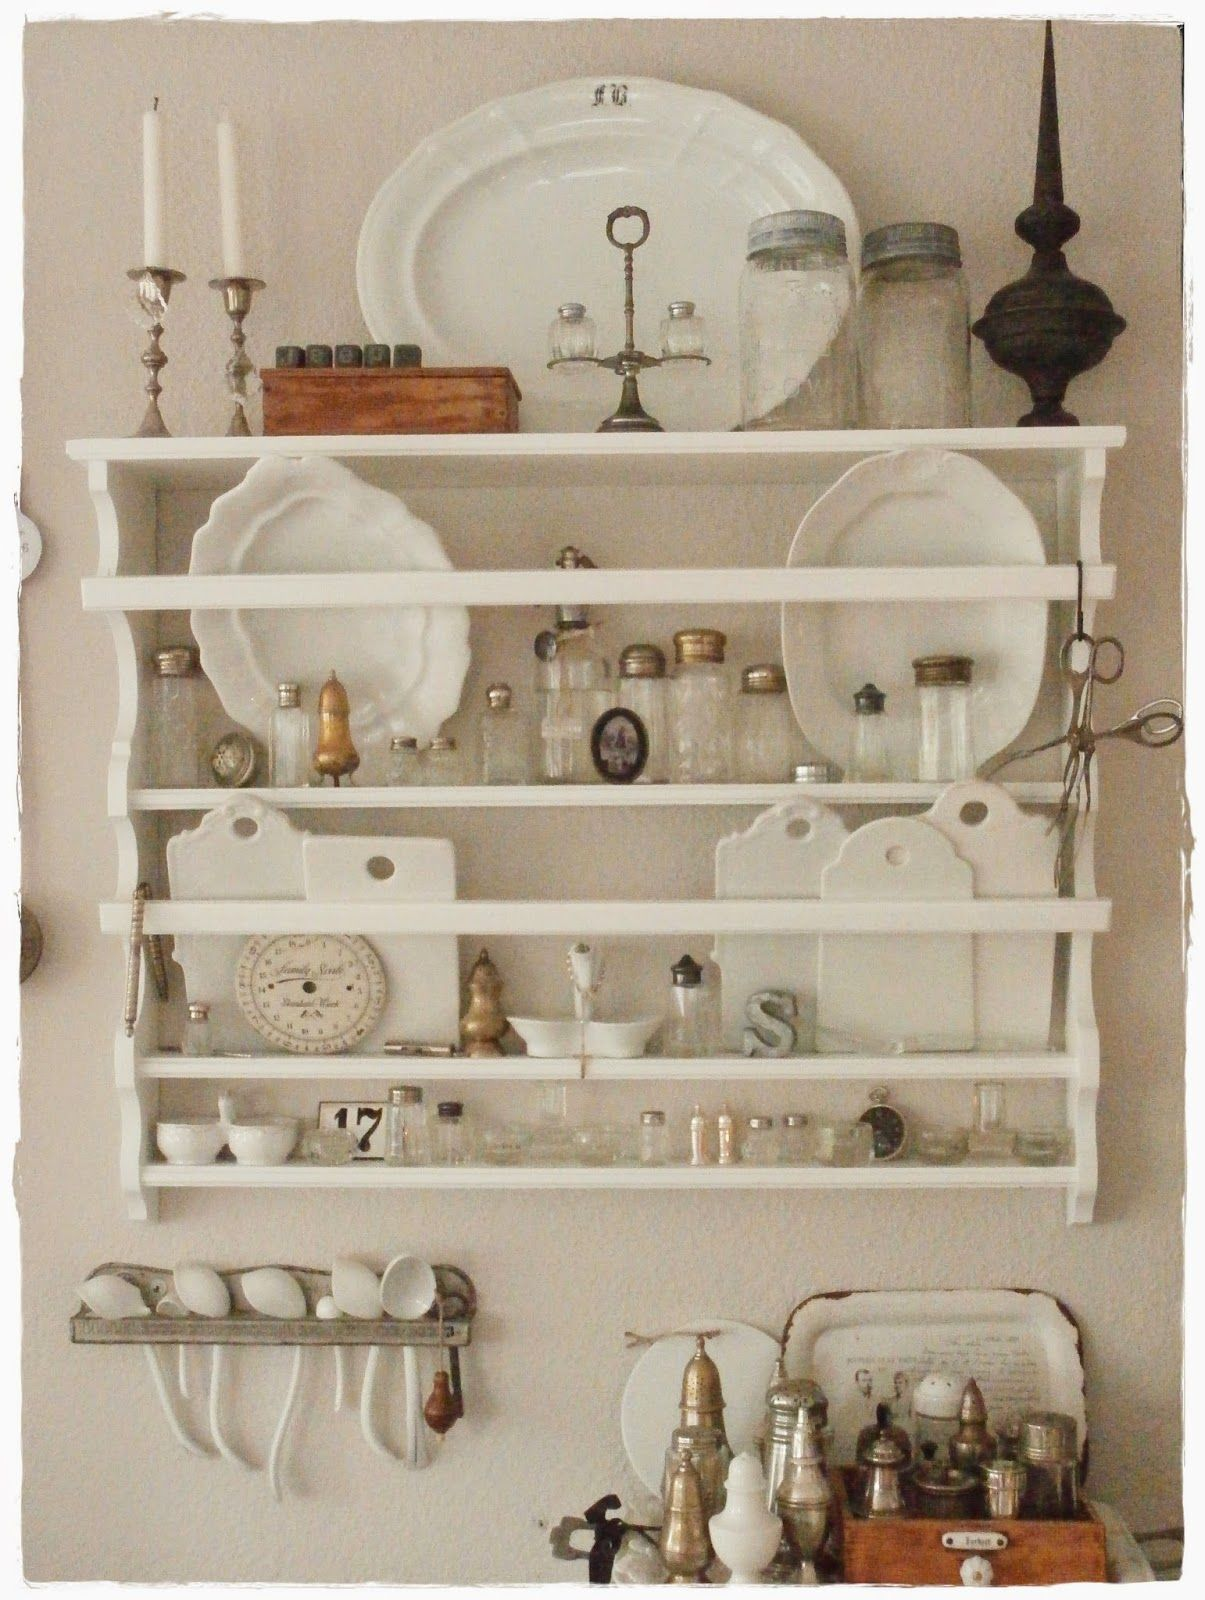 Küche Landhausstil Vintage Shabby Landhaus Vignettes 2 Kitchen Decor Shabby Chic